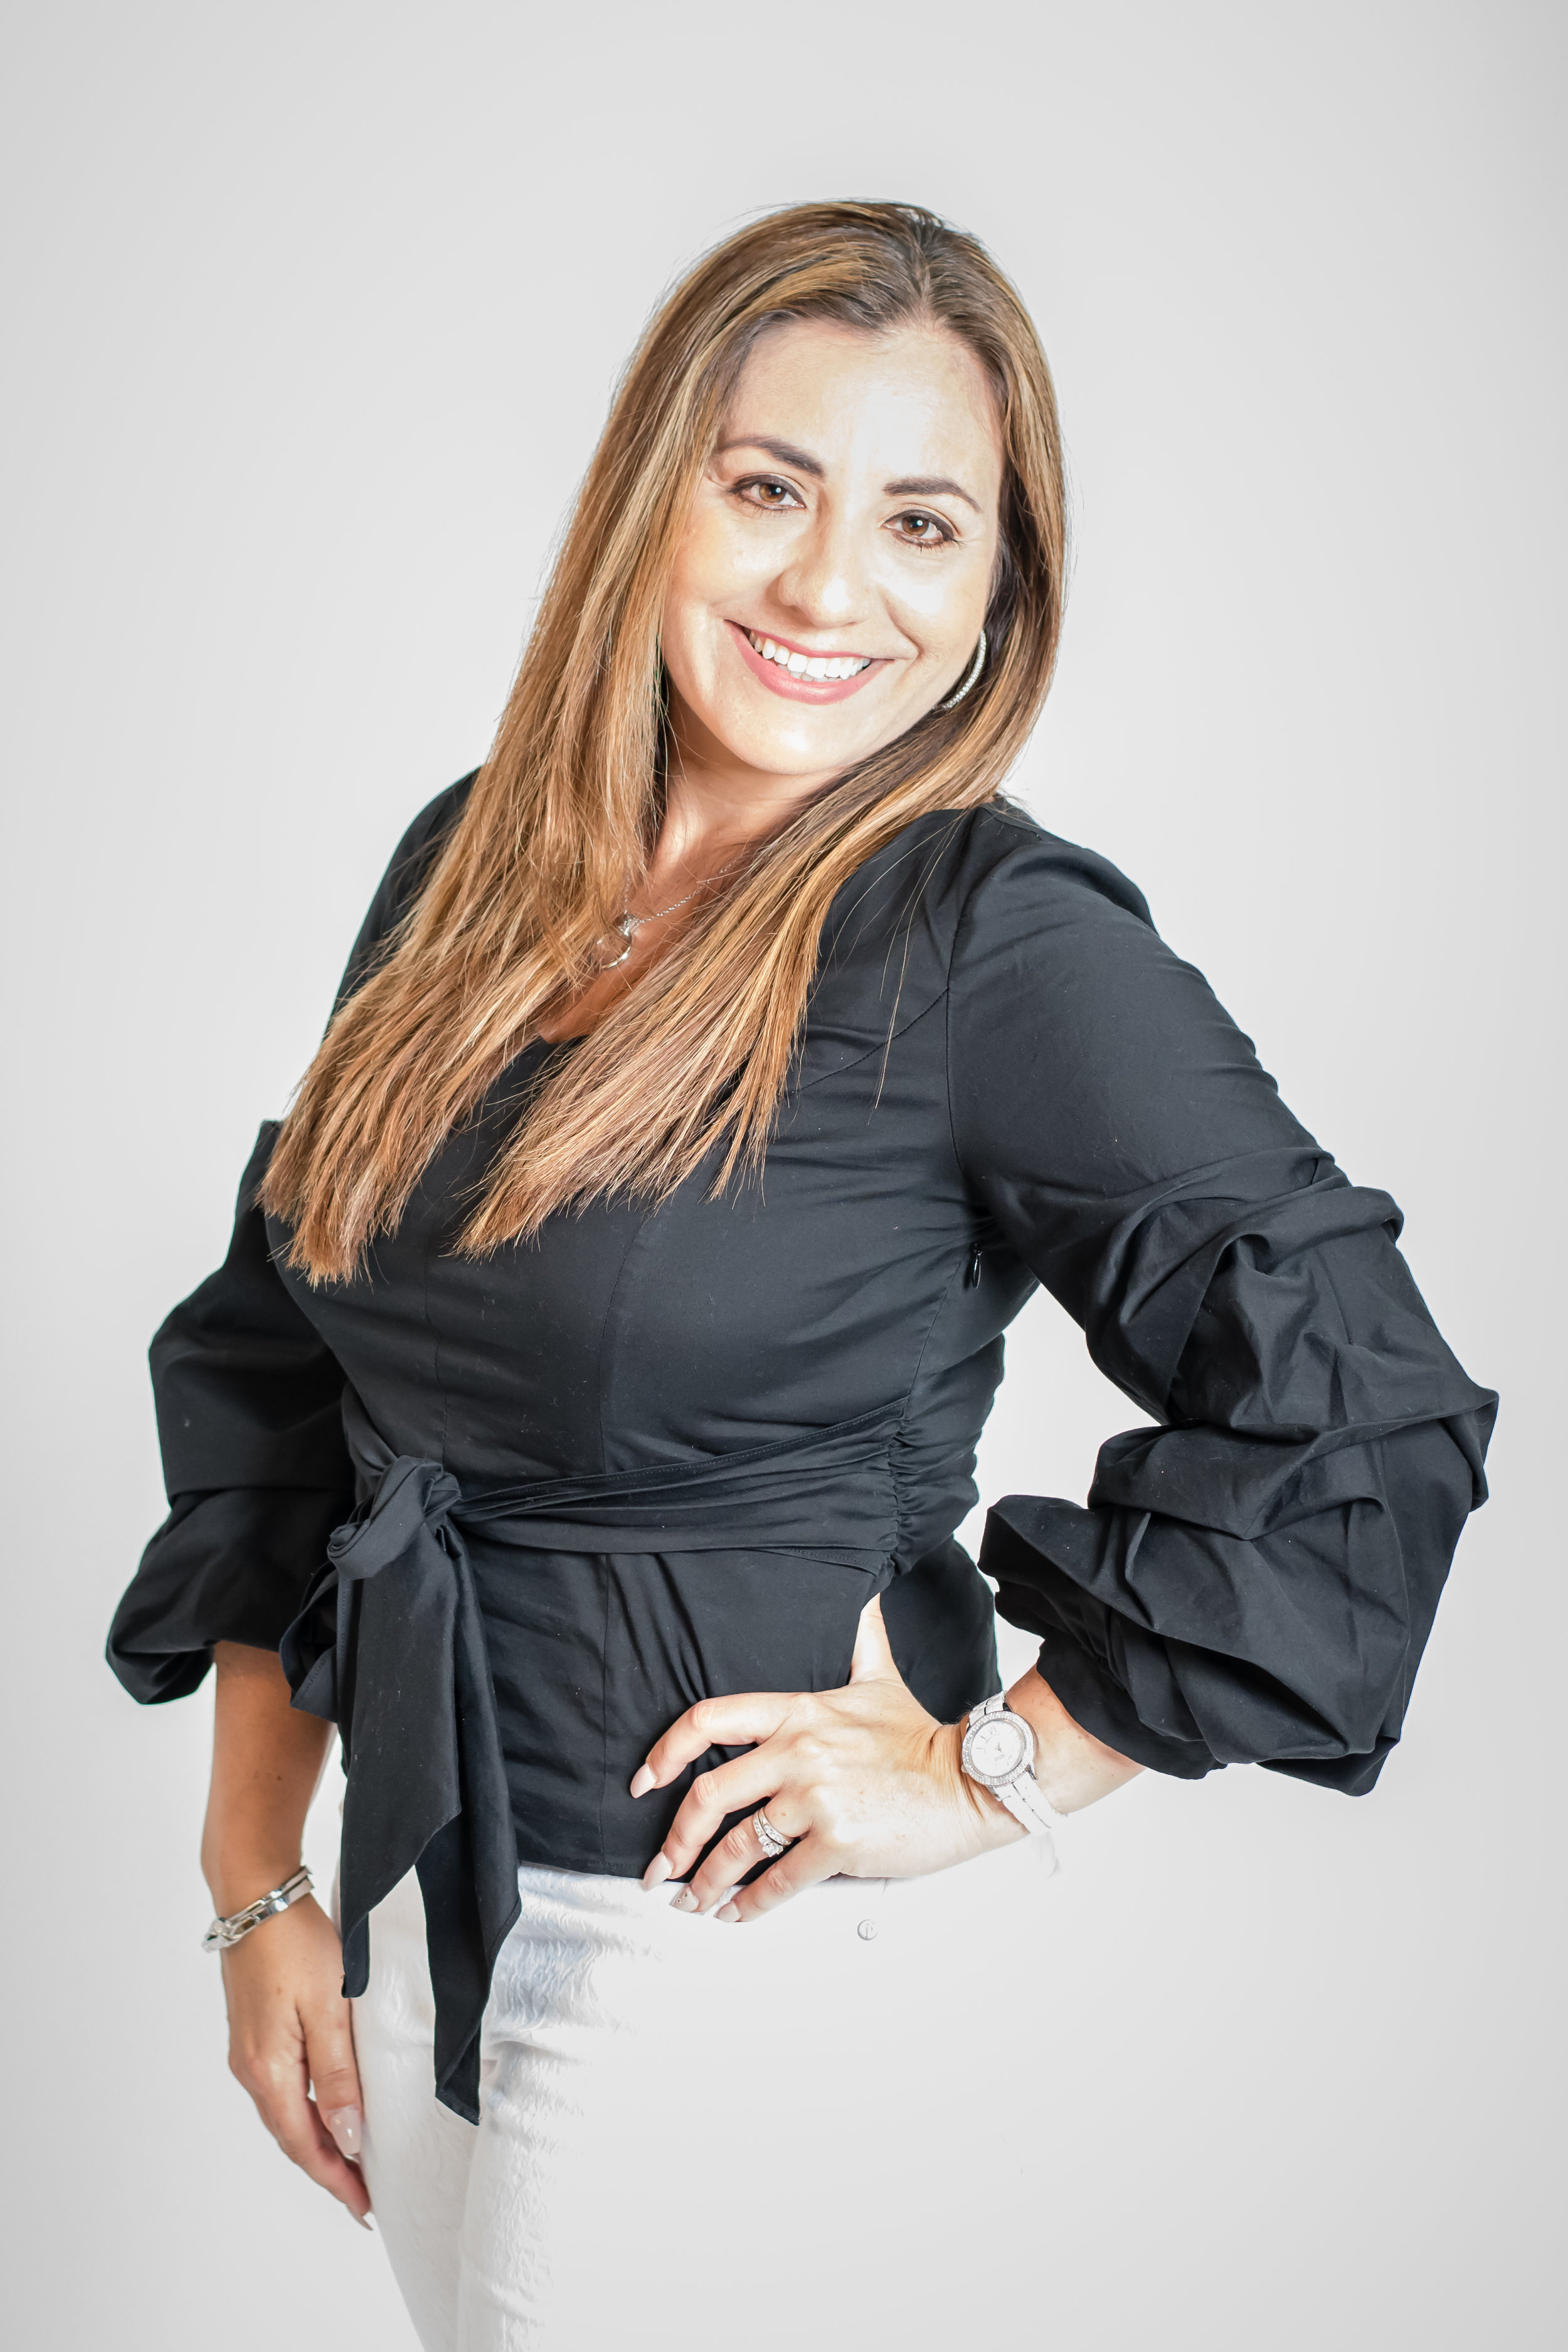 Elisa Maldonado, Real Estate Specialist who loves giving personal, quality service to her customers.  Connect with Elisa.